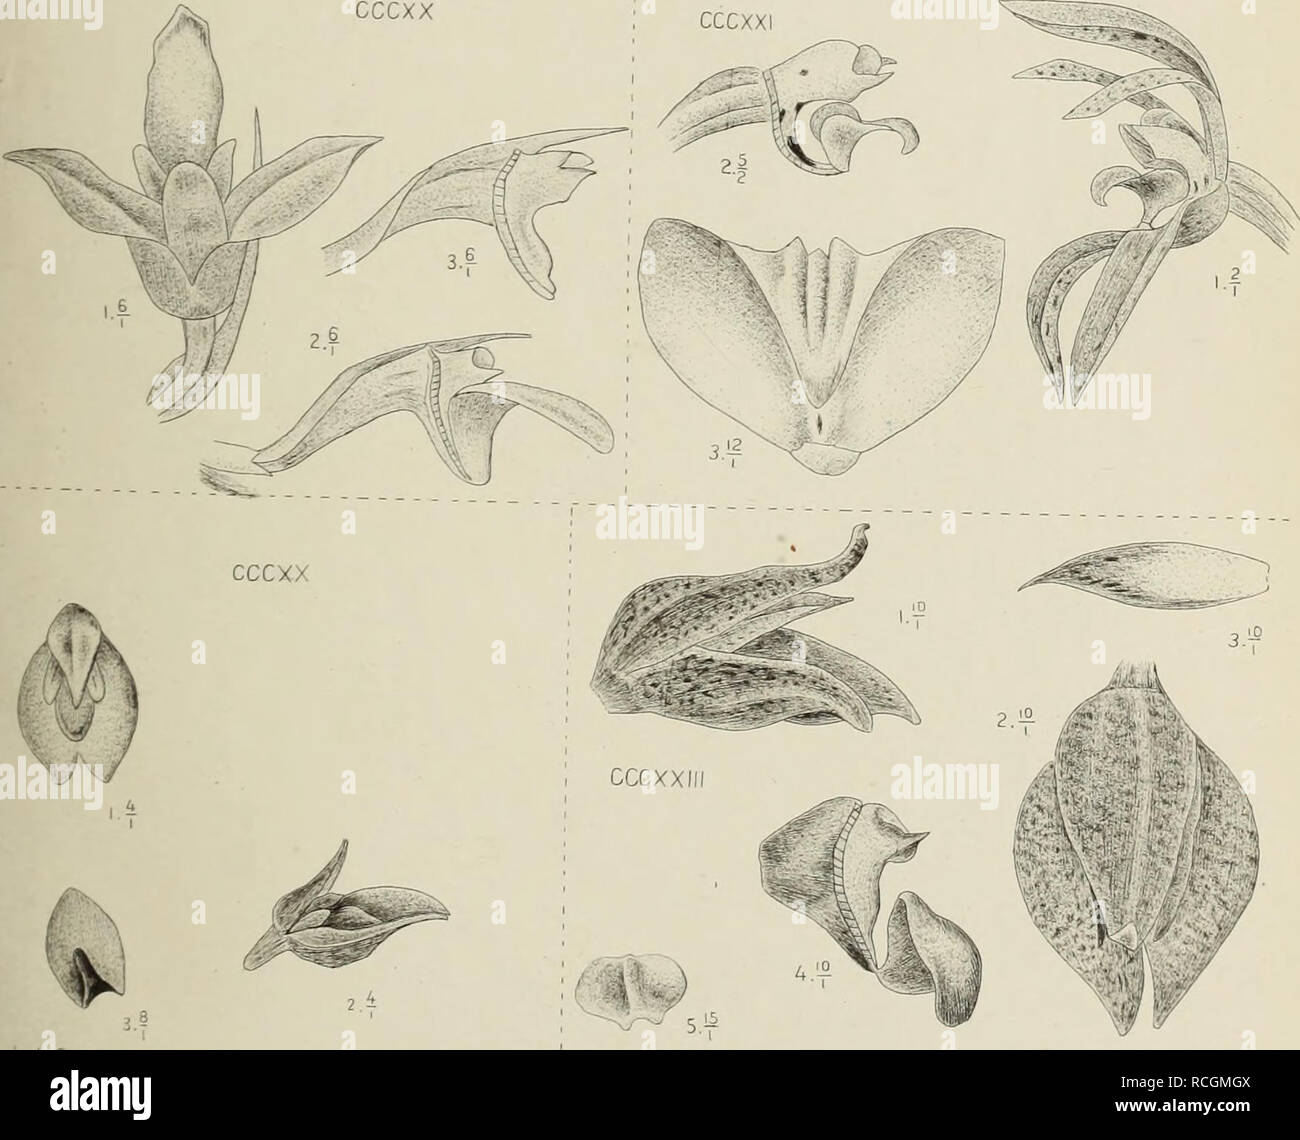 """. Die orchideen von Java. Orchids. J.J.Smith del imguimkitum kehb.f. cccxxi. """" elongatum Hassh. obscurum JJ.S. cccxxm. """" obsrnrunU.lS.mr. CCCXX XCXXII.. Please note that these images are extracted from scanned page images that may have been digitally enhanced for readability - coloration and appearance of these illustrations may not perfectly resemble the original work.. Smith, J. J. (Johannes Jacobus), 1867-1947. Leiden : E. J. Brill - Stock Image"""